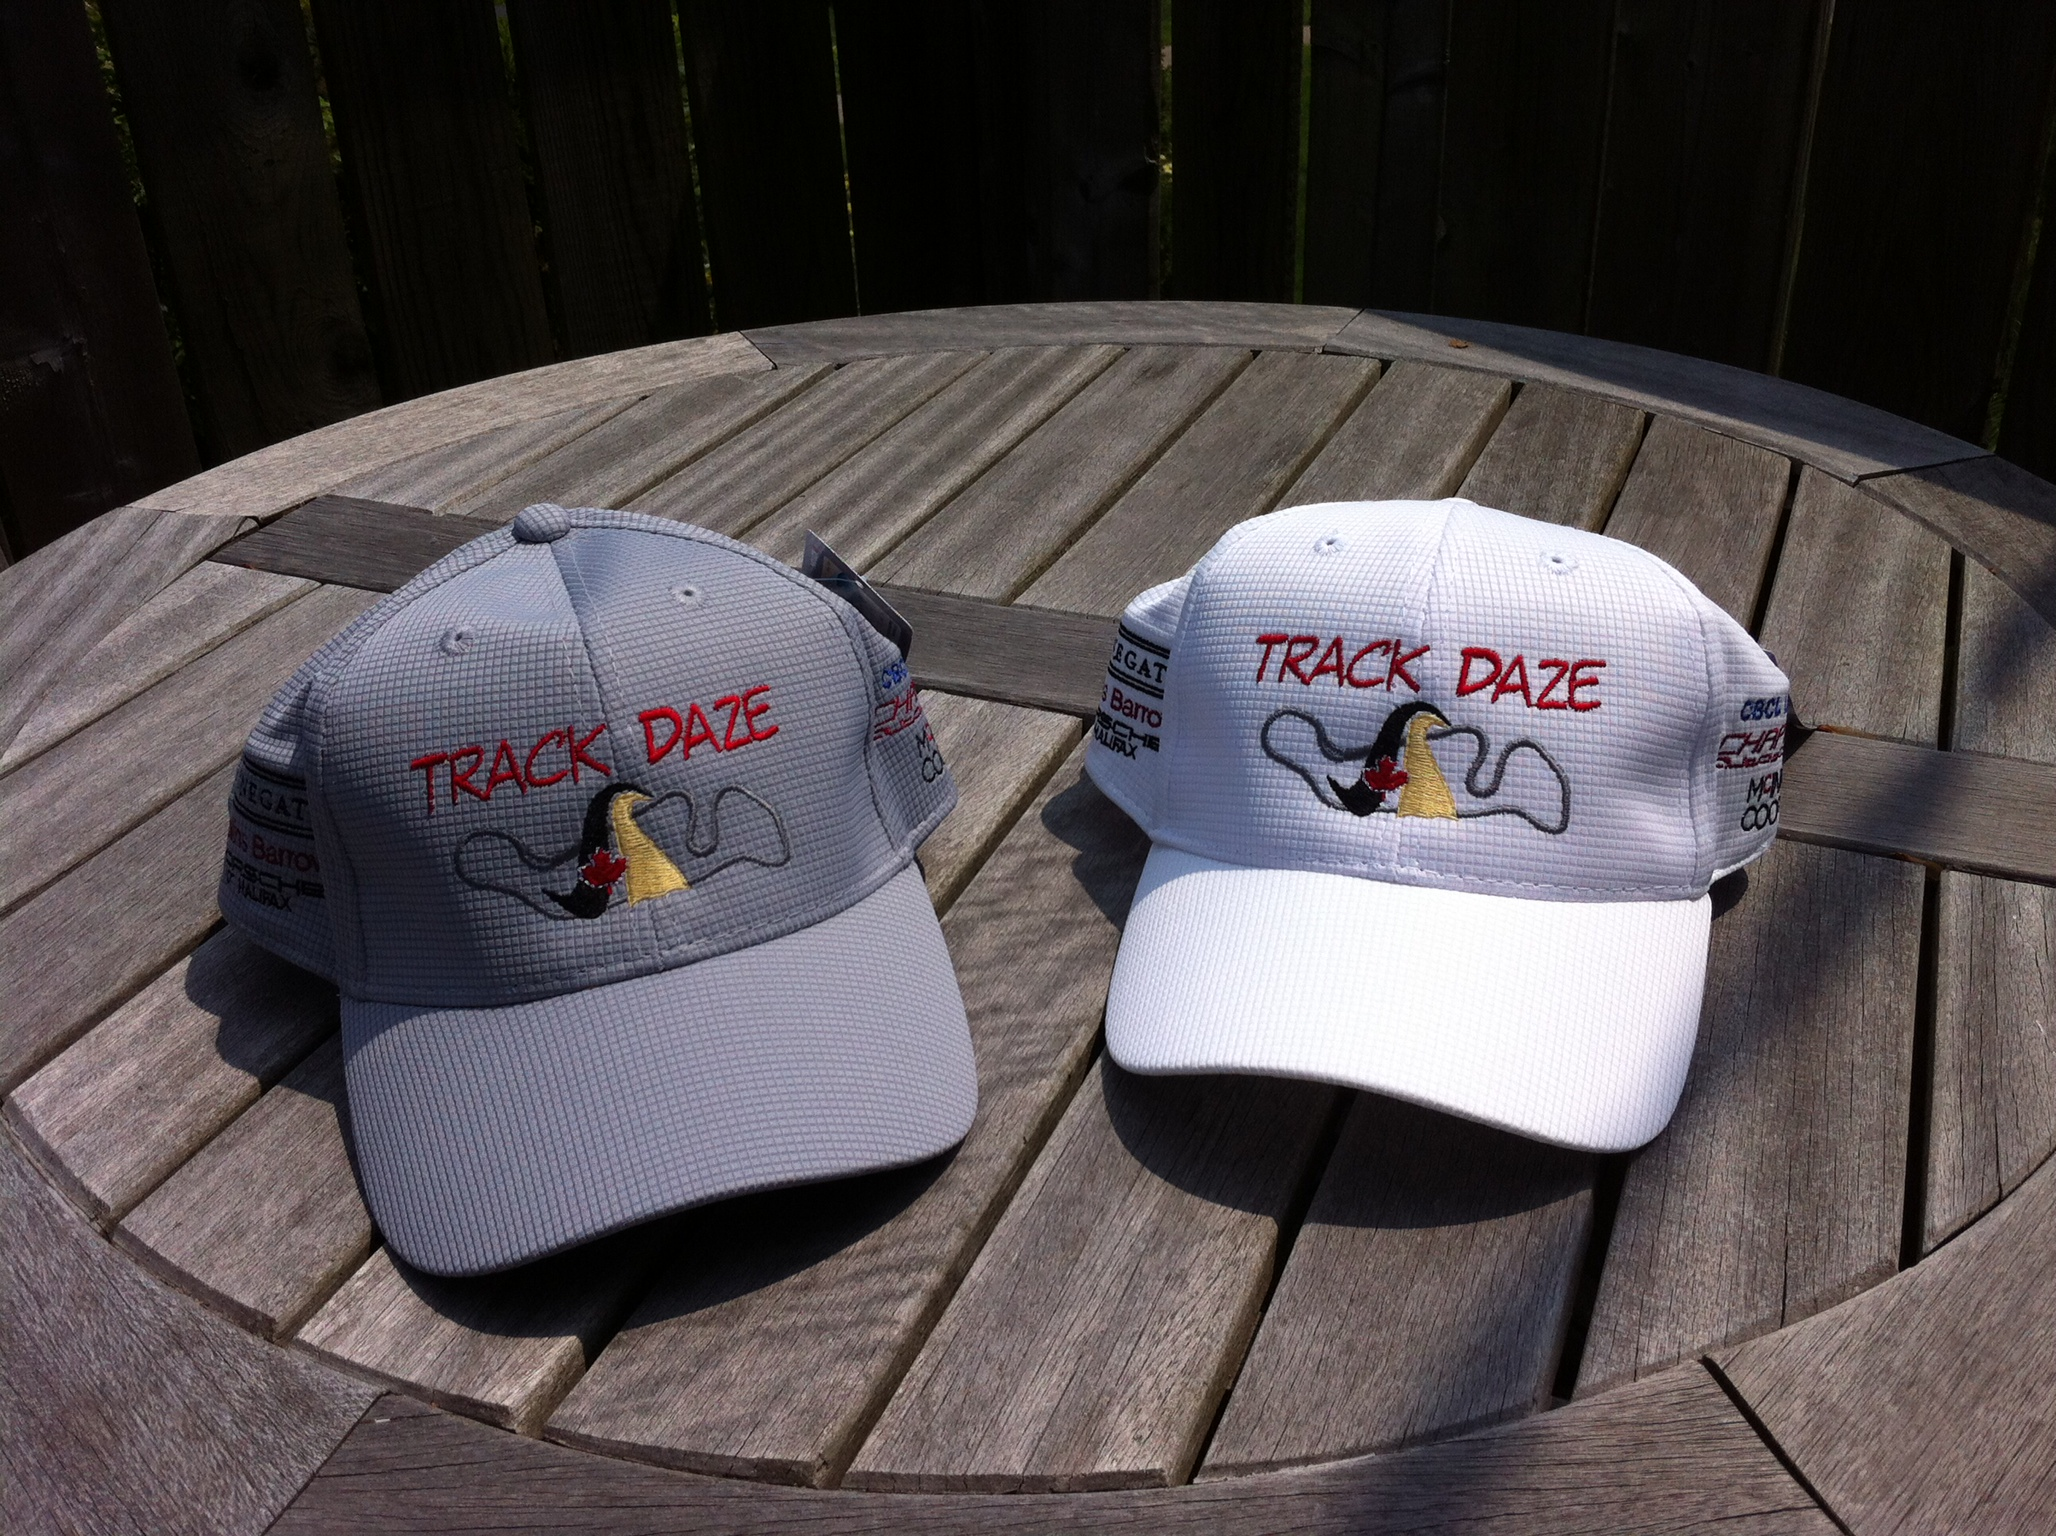 Track Daze Silver Nano cap, shown  in grey and white